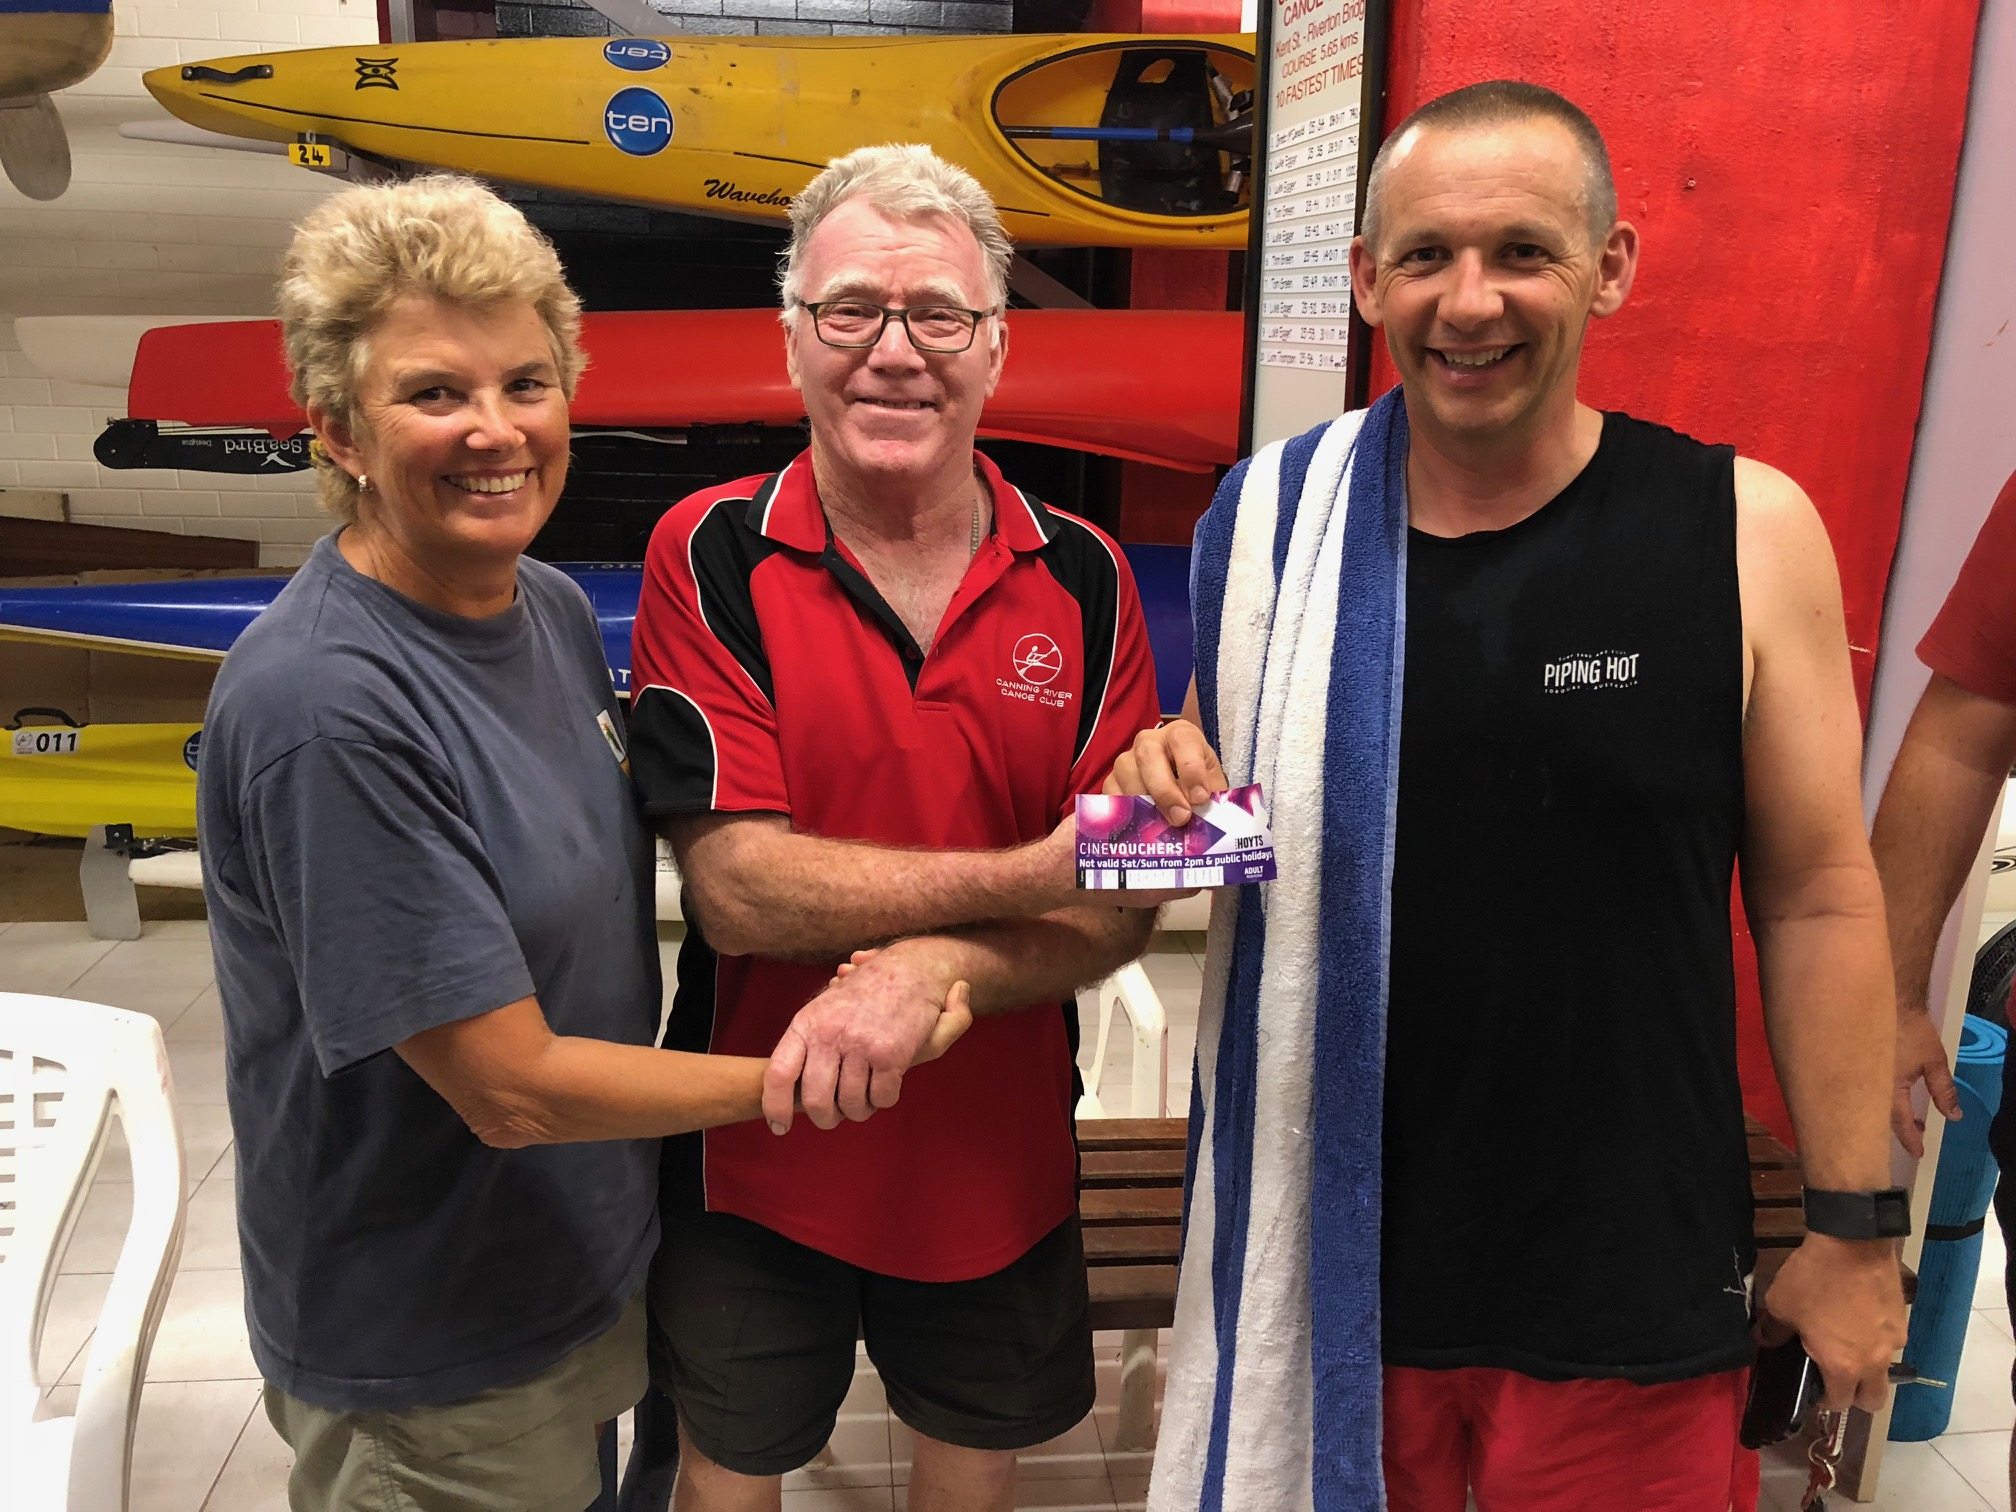 Tuesday 20th March 2018 : Tonights photo shows Club member David Gardiner presenting Julie Plummer and David Boldy with a CRCC club cap and a movie voucher.